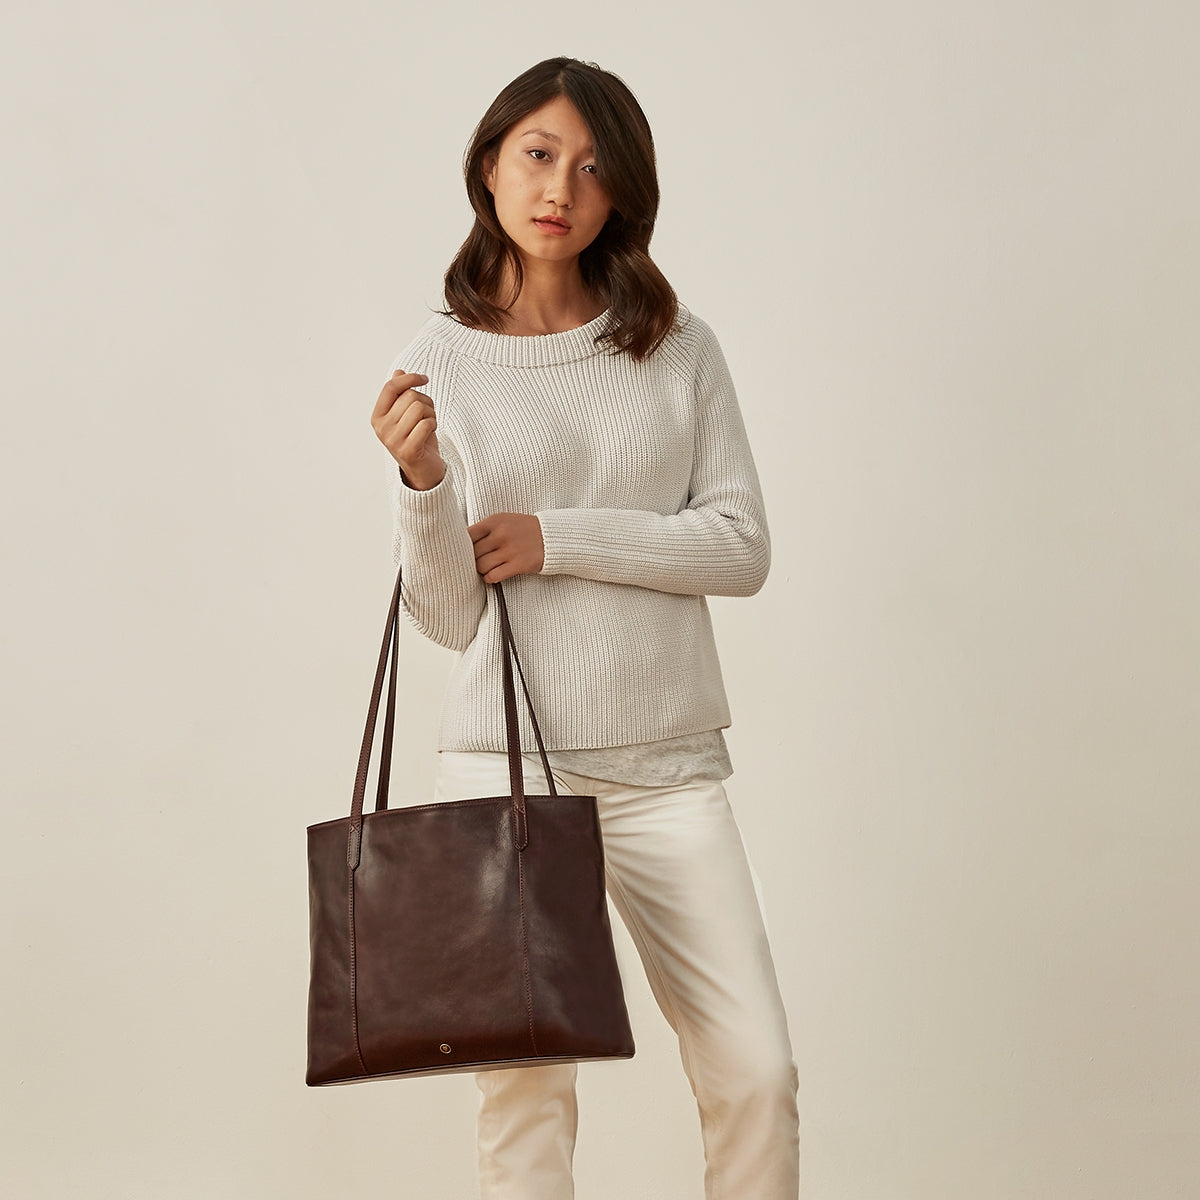 Image 7 of the 'Athenea' Dark Chocolate Veg-Tanned Leather Shopper